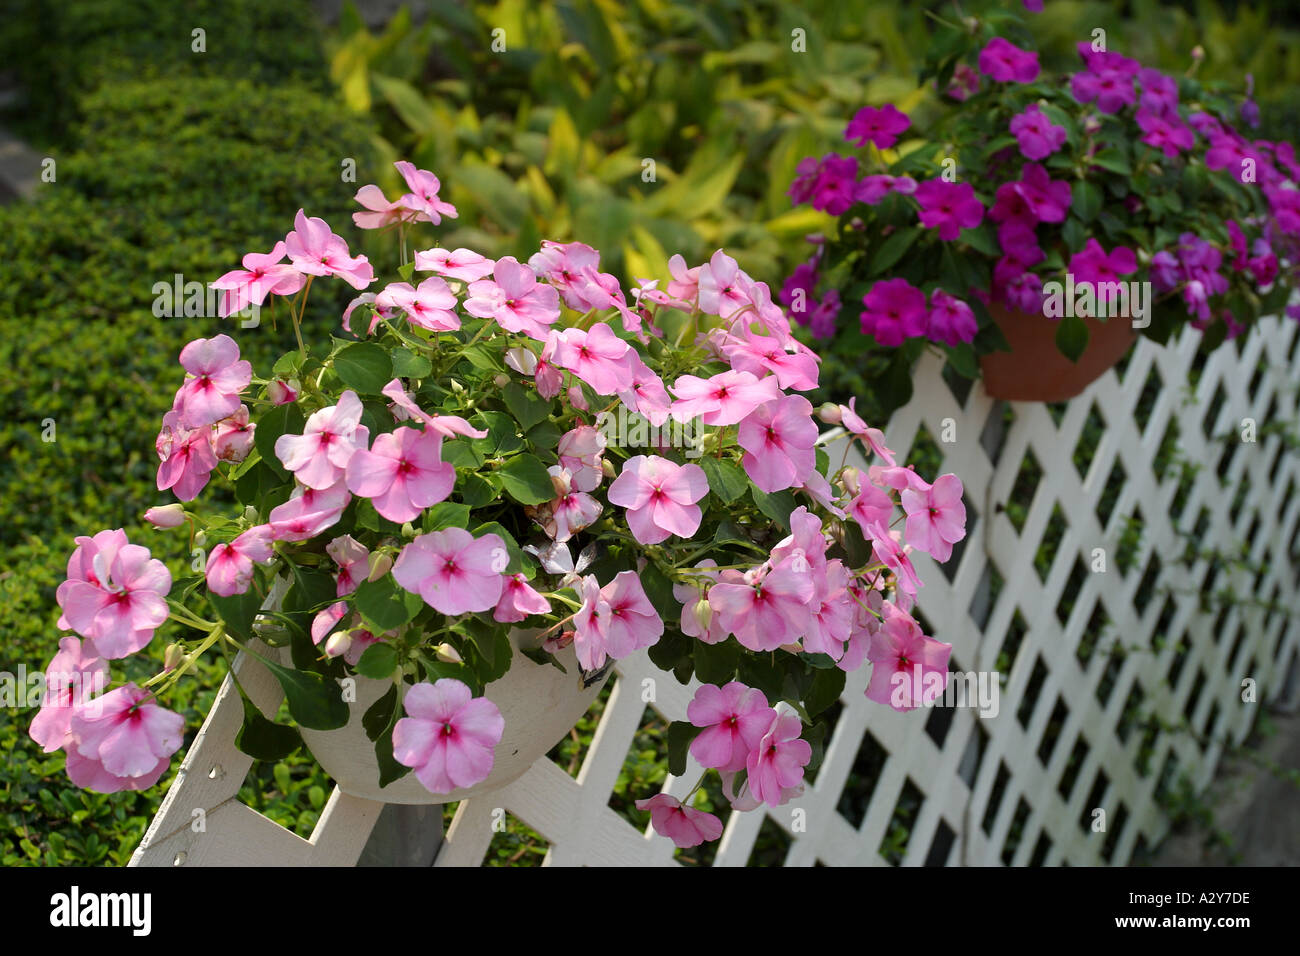 Flowering shrubs clusters purple outdoor fence bamboo twigs hedge stock photo flowering shrubs clusters purple outdoor fence bamboo twigs hedge white red pink dhlflorist Choice Image